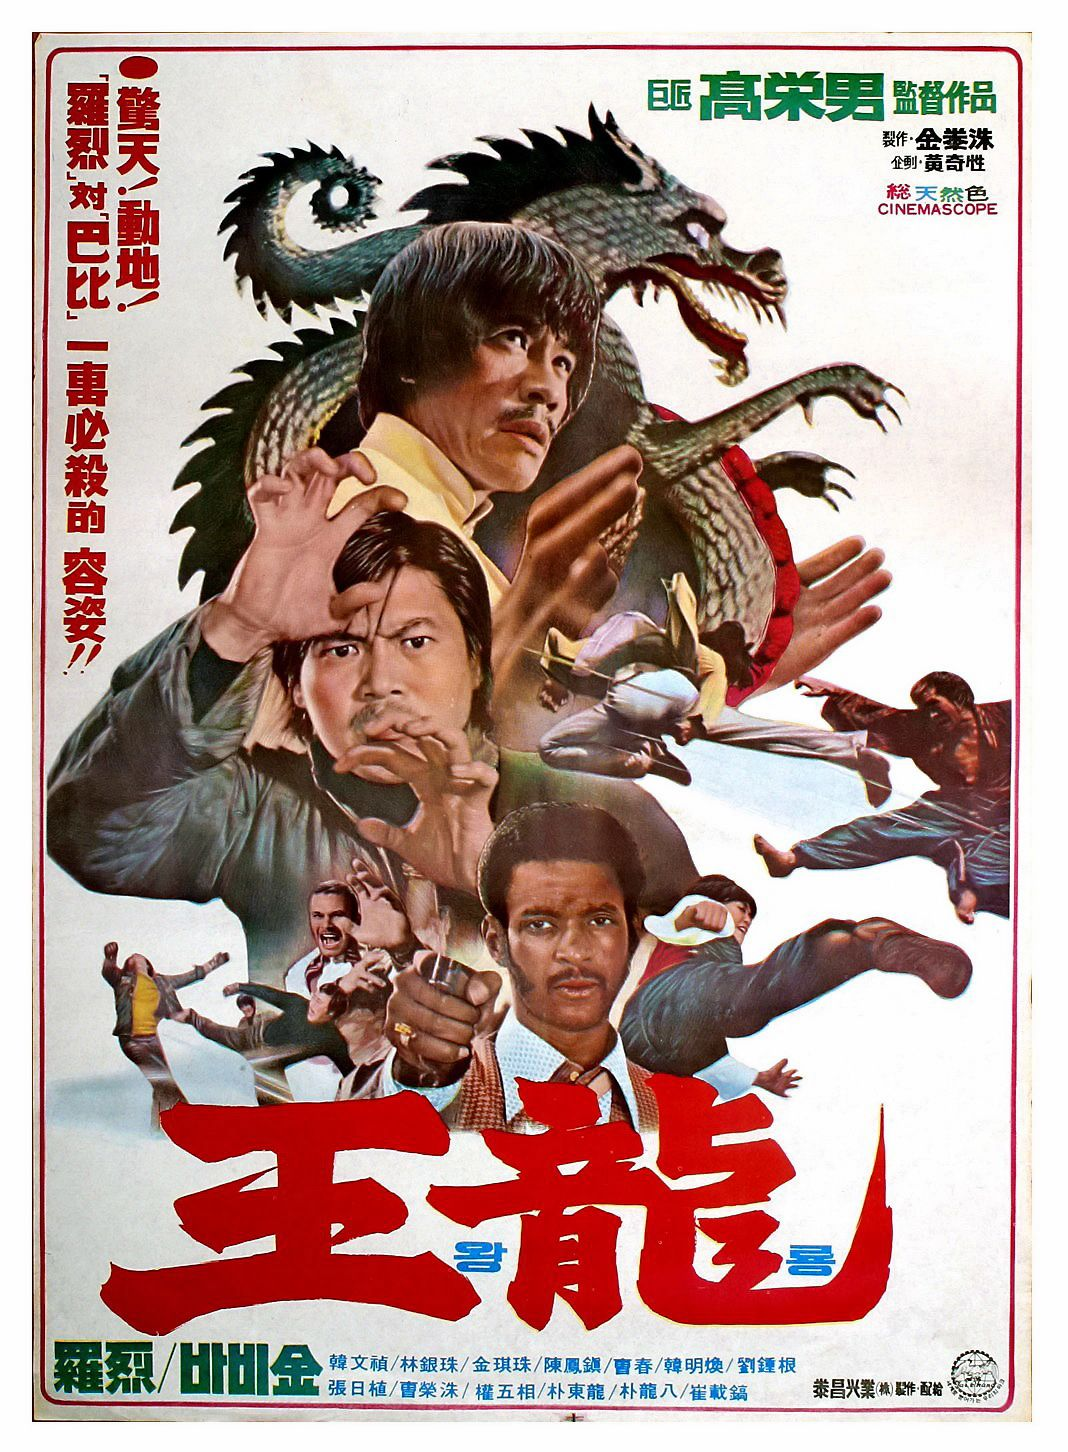 Deadly kick old film posters martial arts movies full